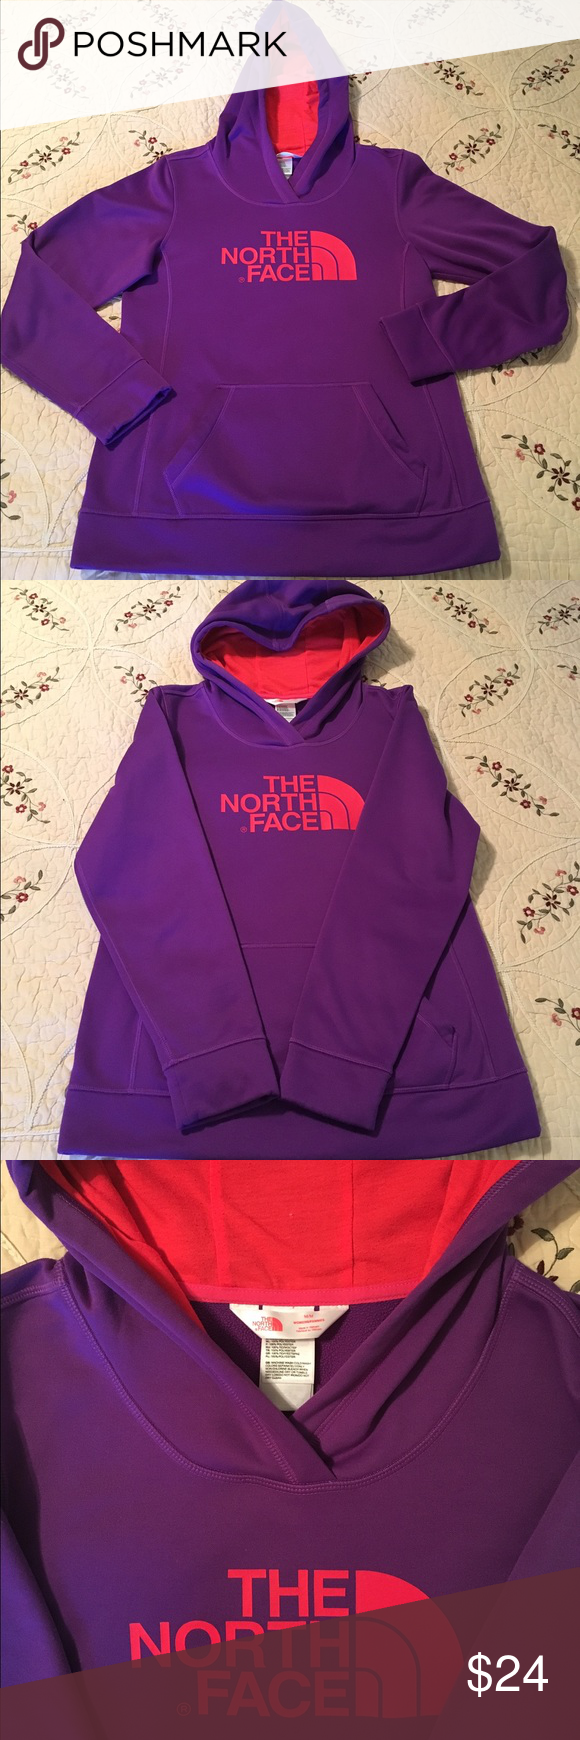 The North Face hoodie M fleece inside. The North Face fitted pullover hoodie with kangaroo pocket and secret media storage pocket inside of it. Polyester outer with inside Fleece lined and contrasting hood. Will fit S/M great condition. Smoke free/pet free home. The North Face Tops Sweatshirts & Hoodies